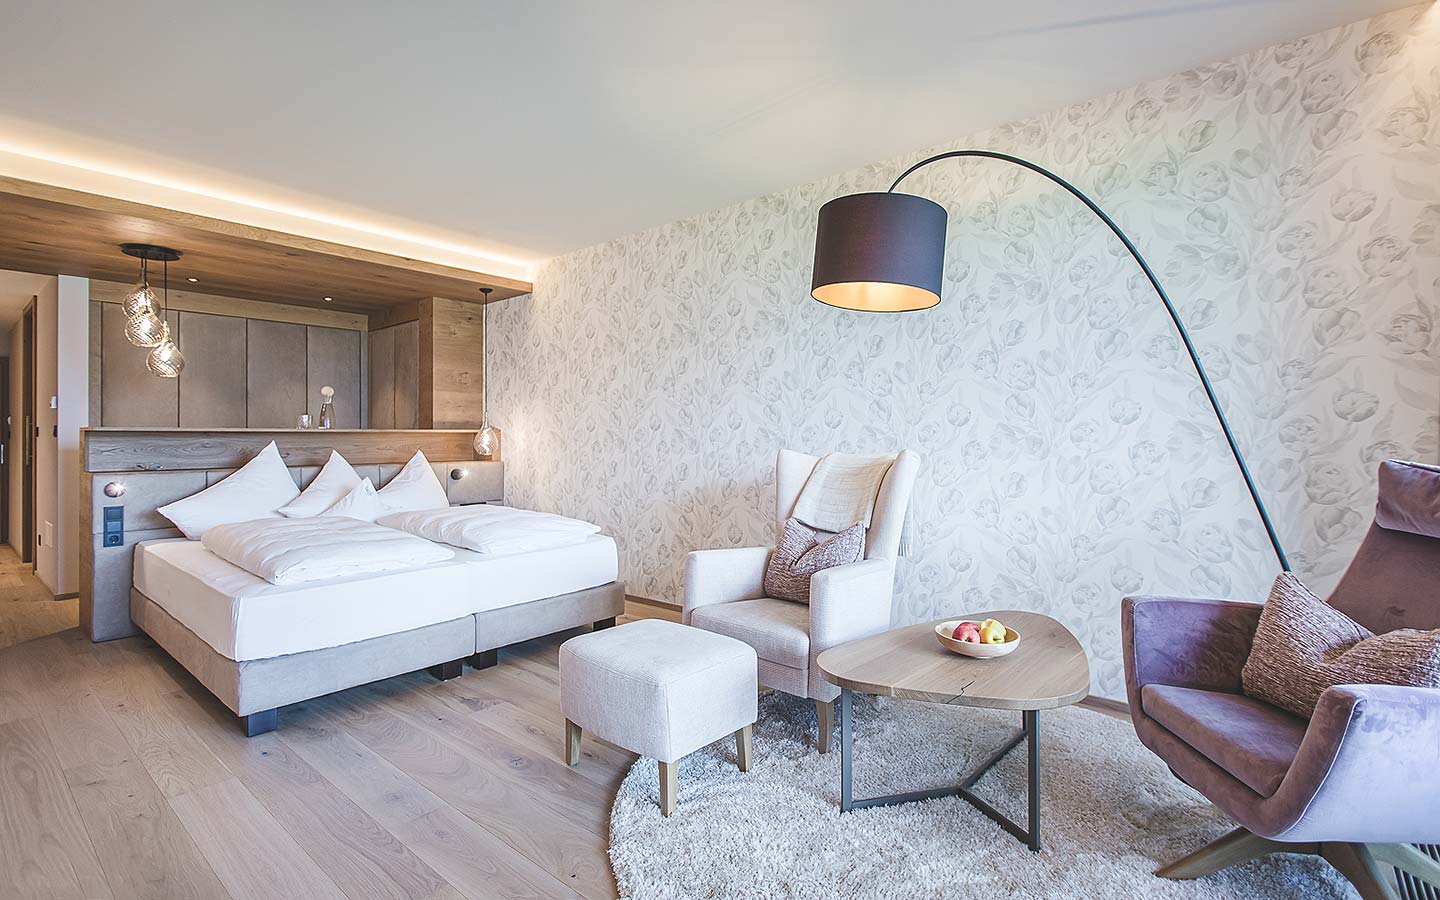 Dorf Tirol Hotel Juniorsuite